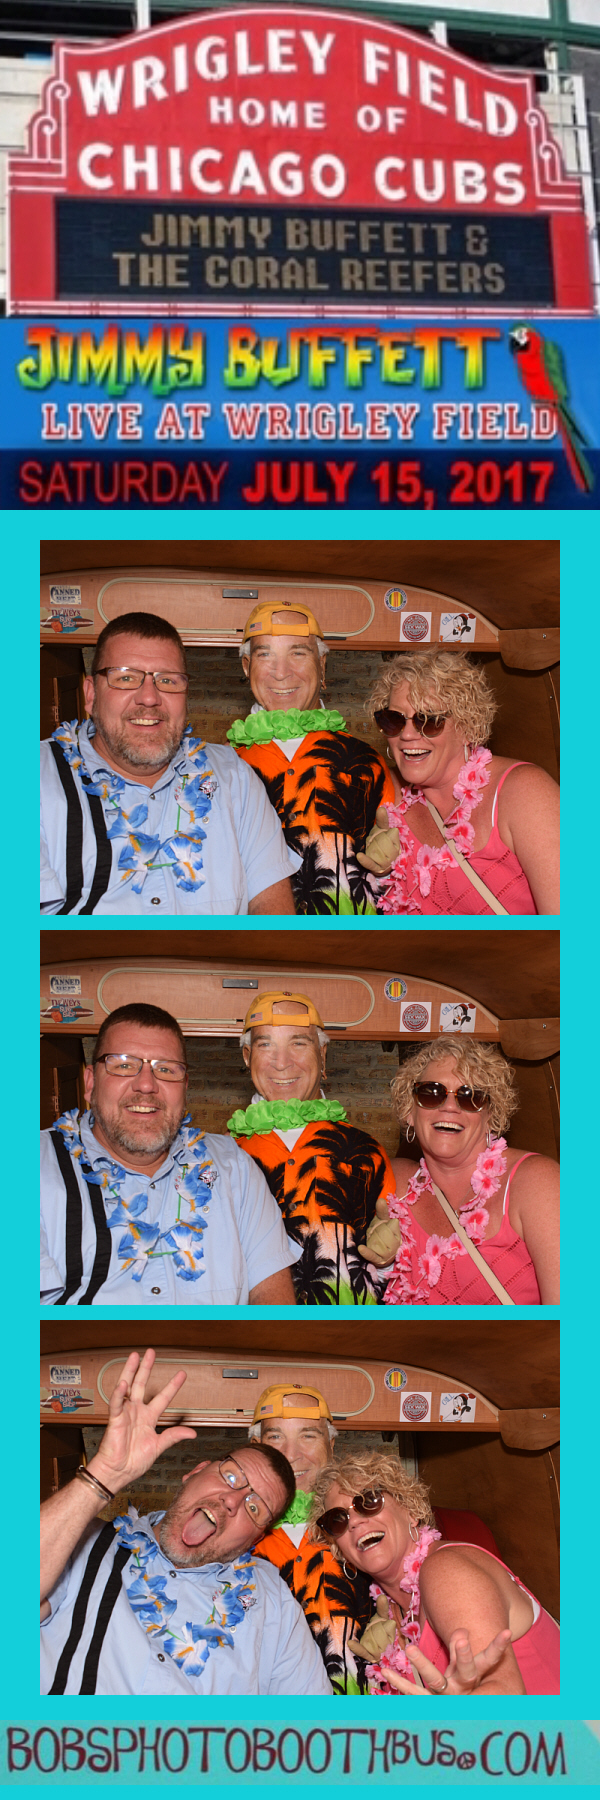 Jimmy Buffett final photo strip graphic_41.jpg